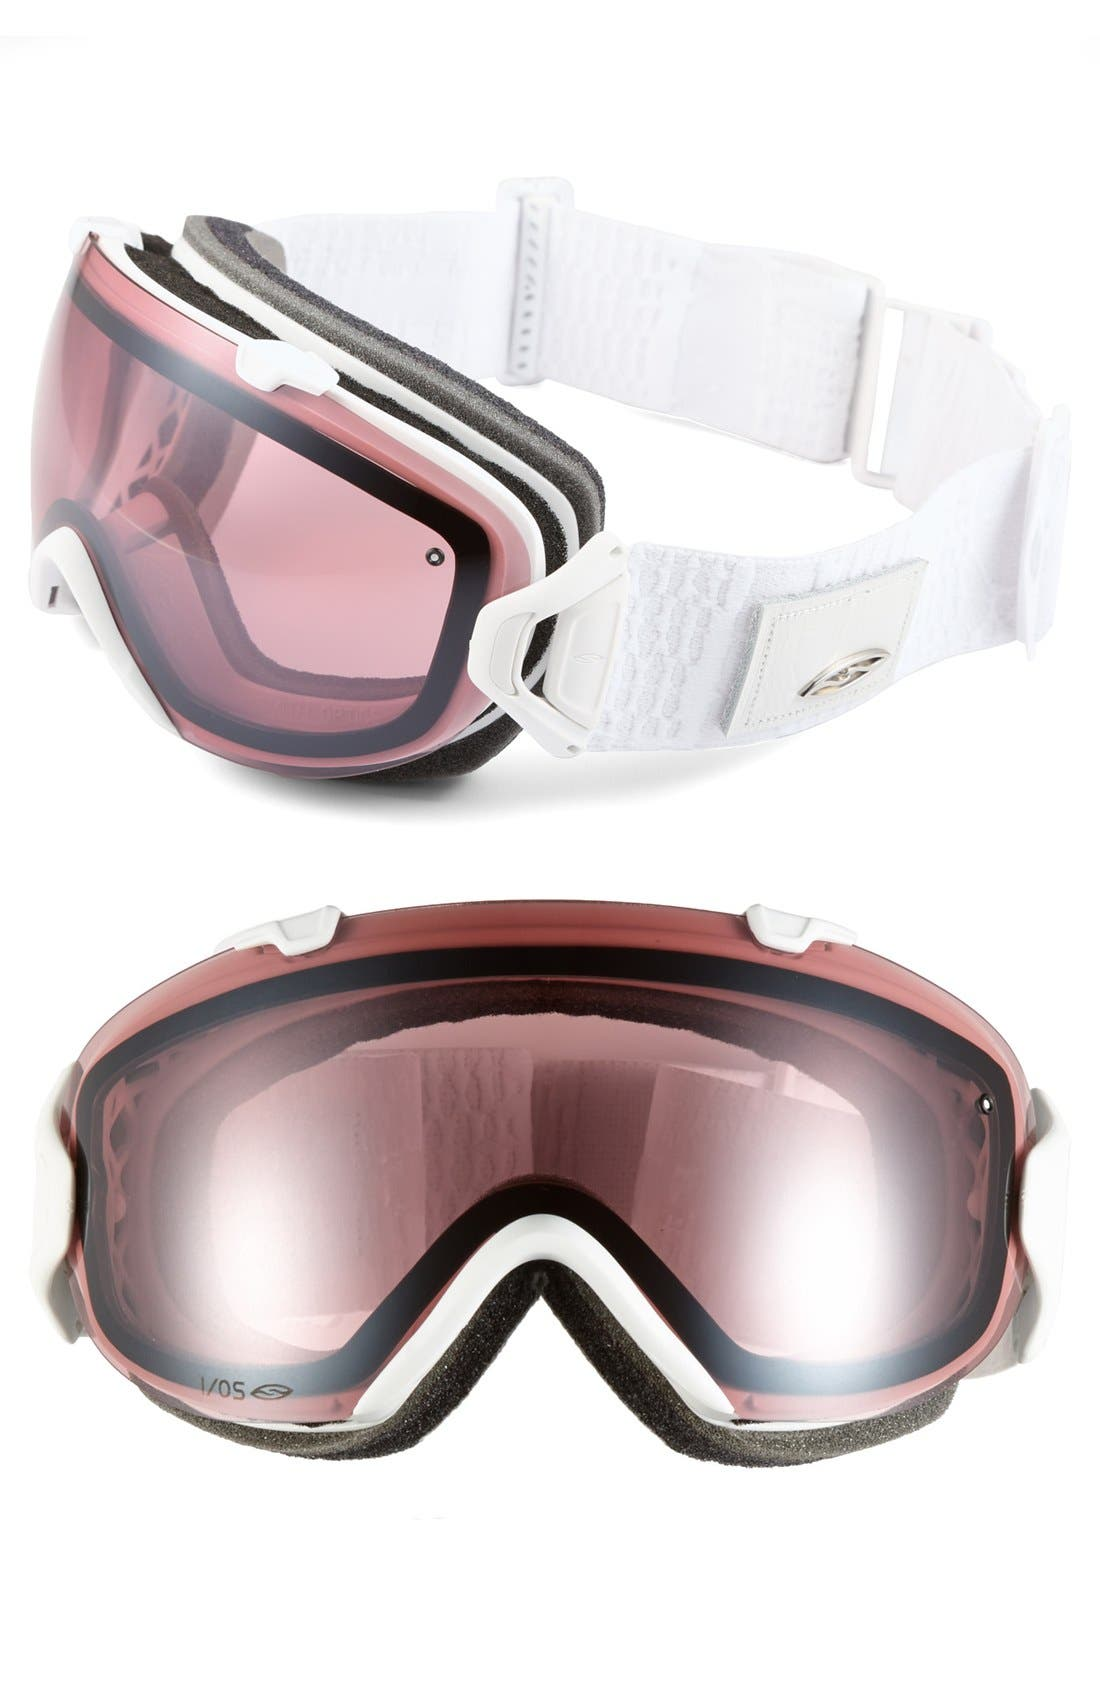 Alternate Image 1 Selected - Smith 'I/OS' Snow Goggles